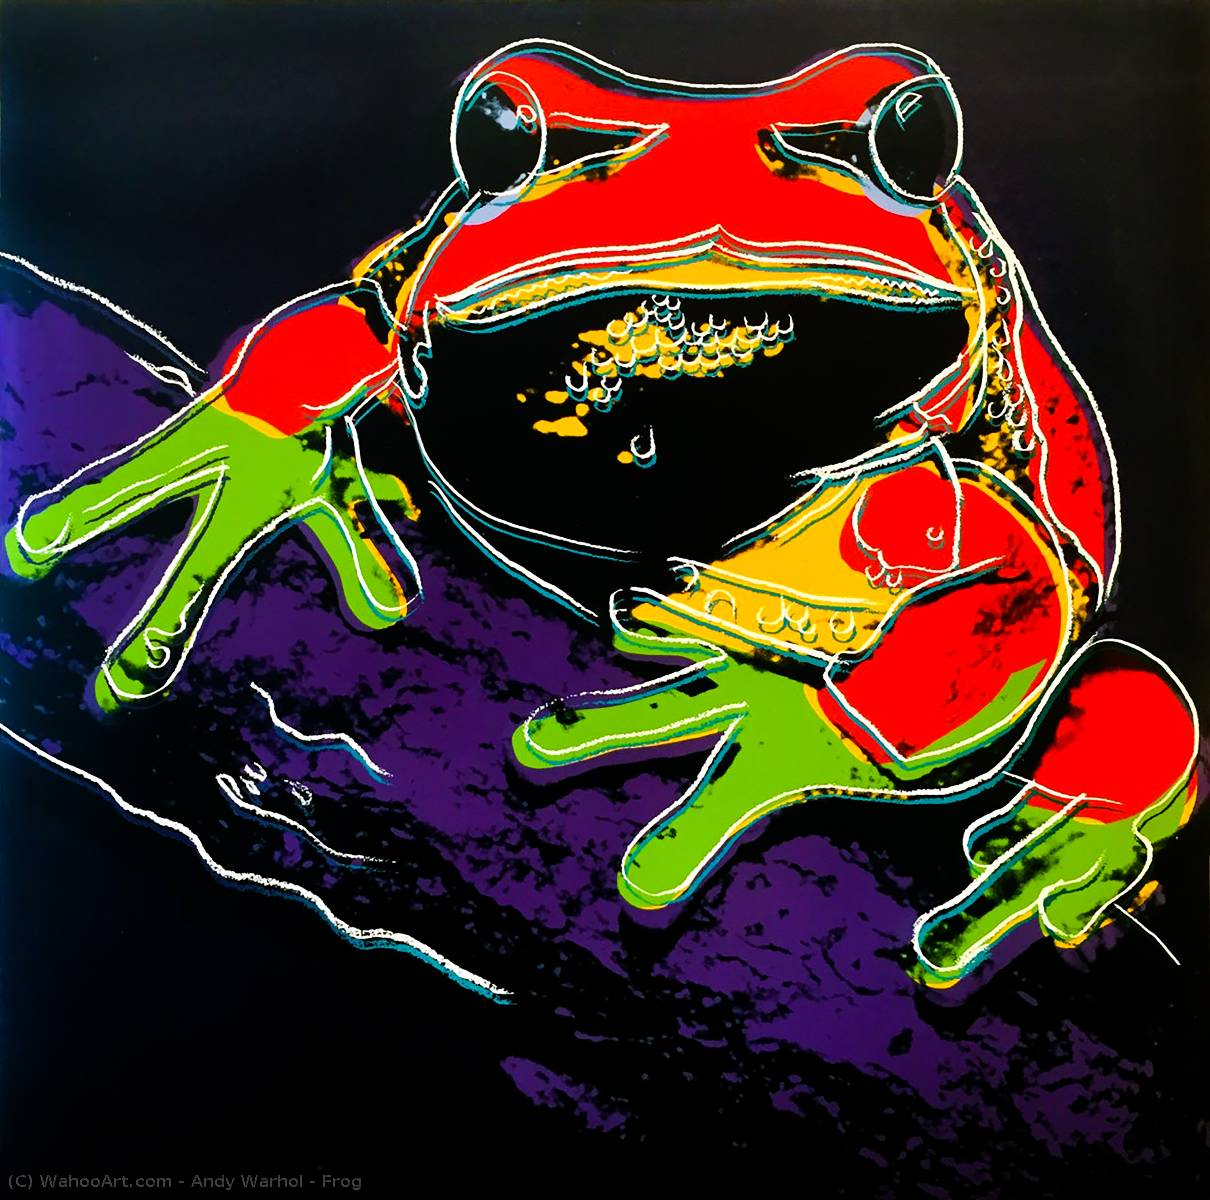 famous painting Frog of Andy Warhol